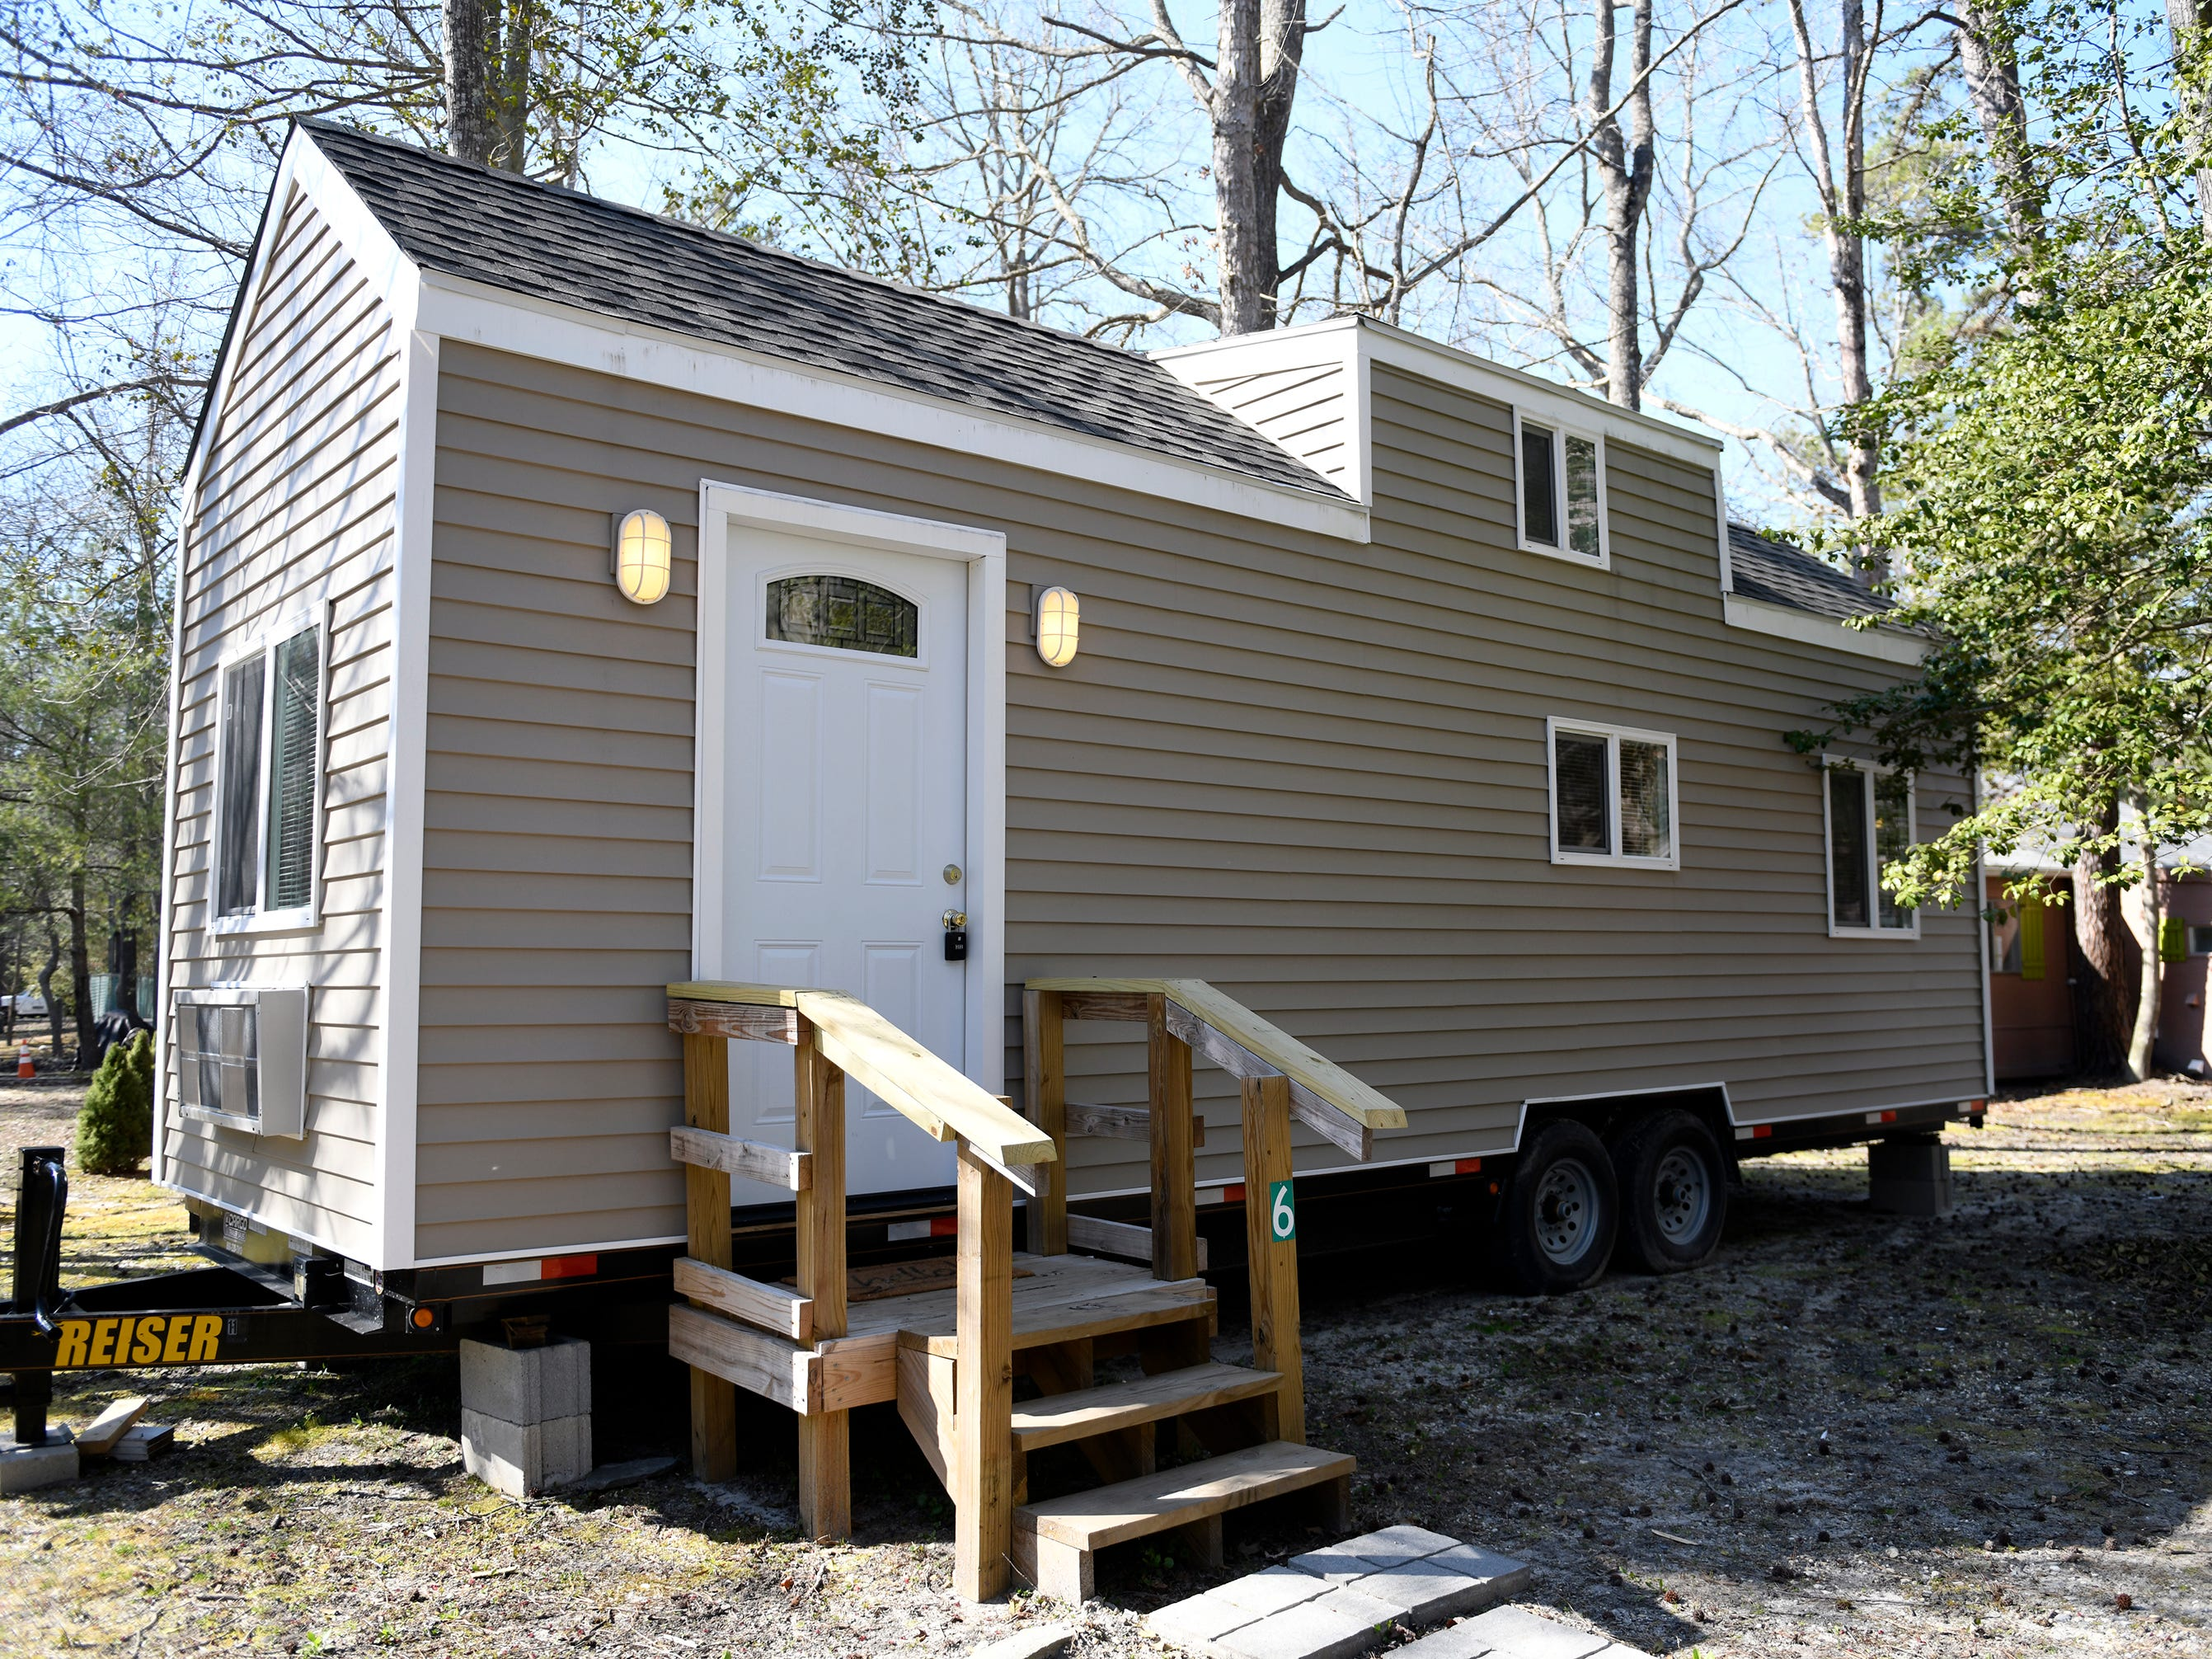 Tiny-home paradise found at NJ vacation home community: IN PHOTOS